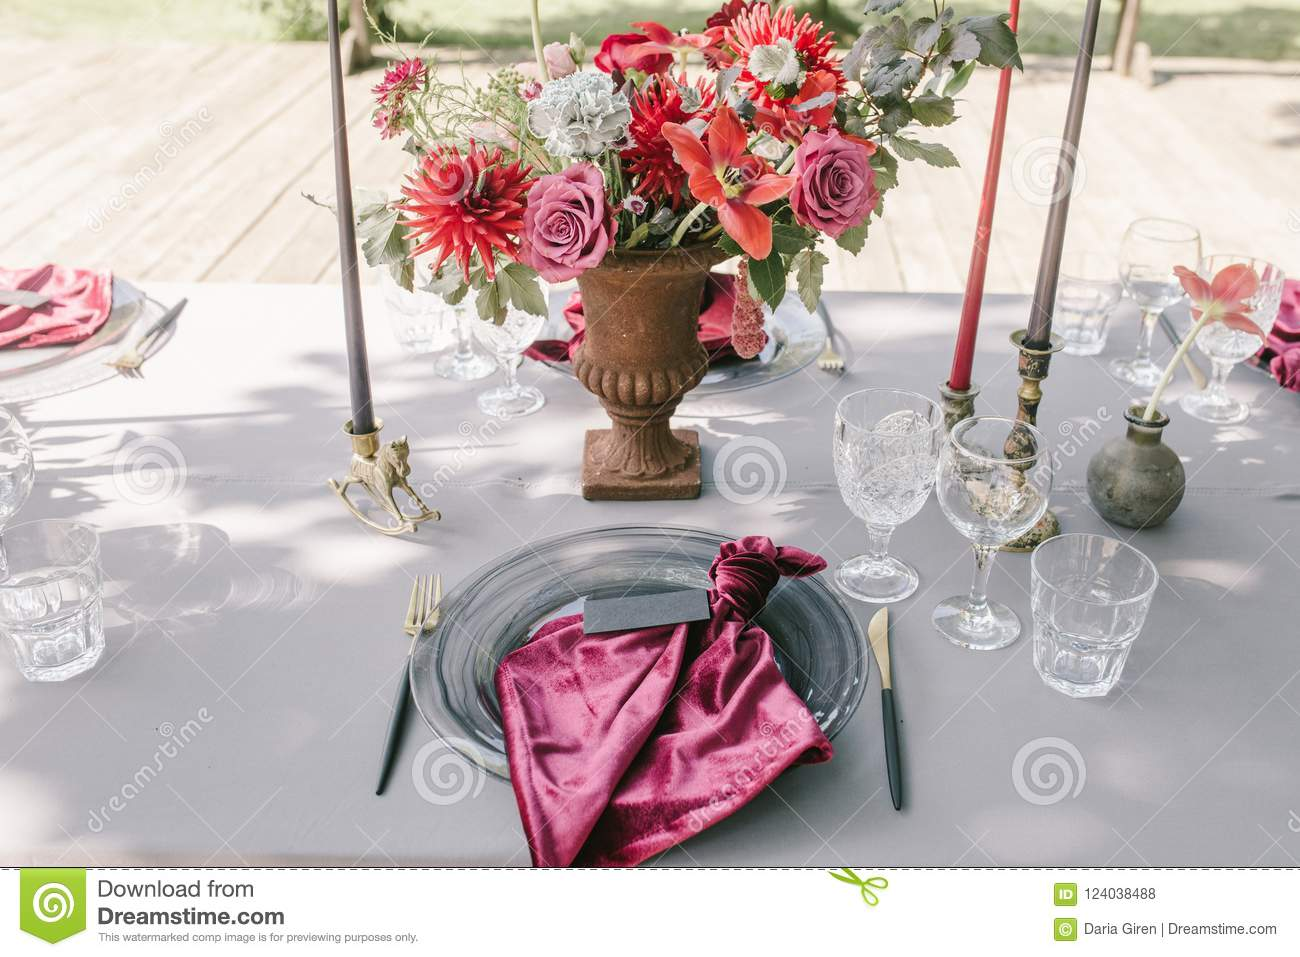 Rustic Banquet Candels Glasses Red And Pink Flowers Elegance And